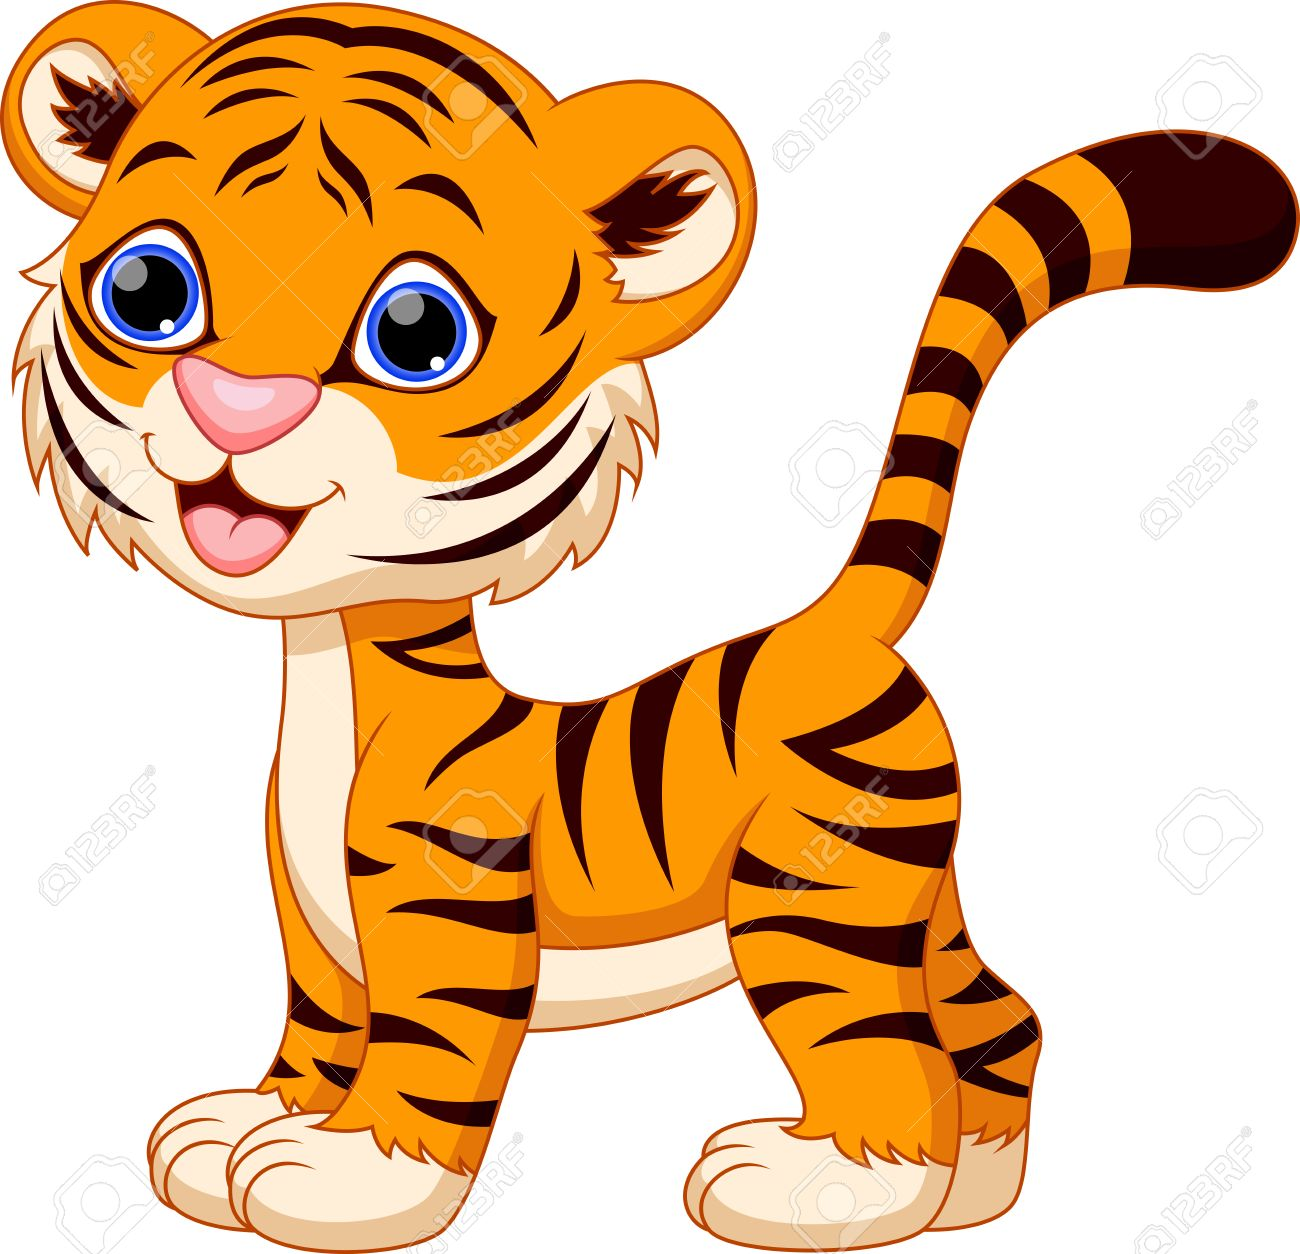 tiger drawing cartoon at getdrawings com free for personal use rh getdrawings com images of cartoon baby tigers cute cartoon pictures of tigers